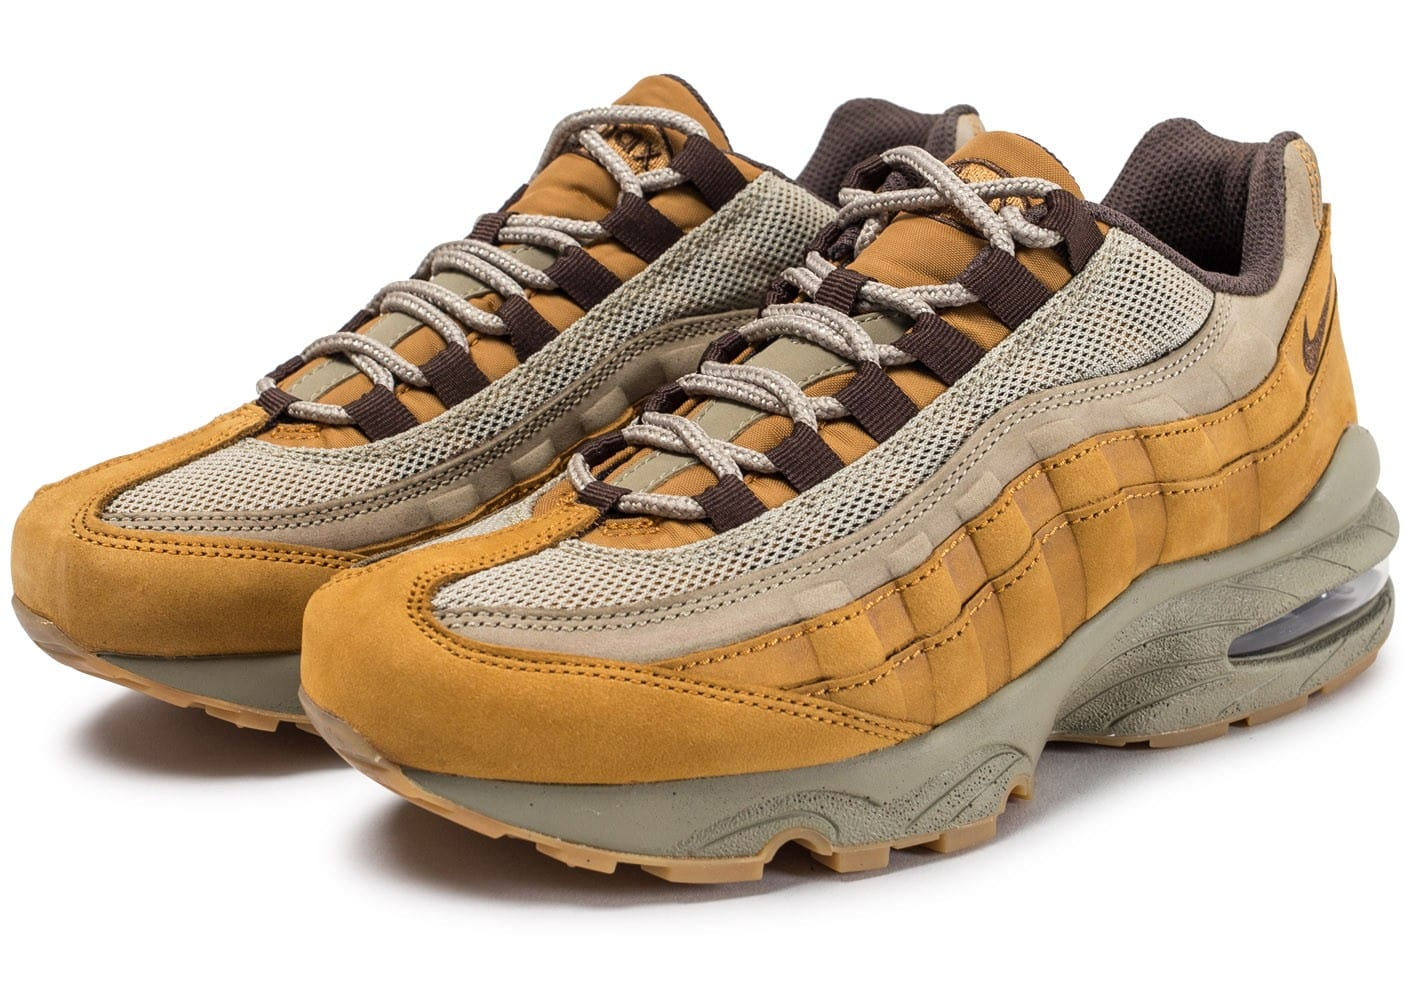 nike air max 95 winter prm junior wheat chaussures femme chausport. Black Bedroom Furniture Sets. Home Design Ideas